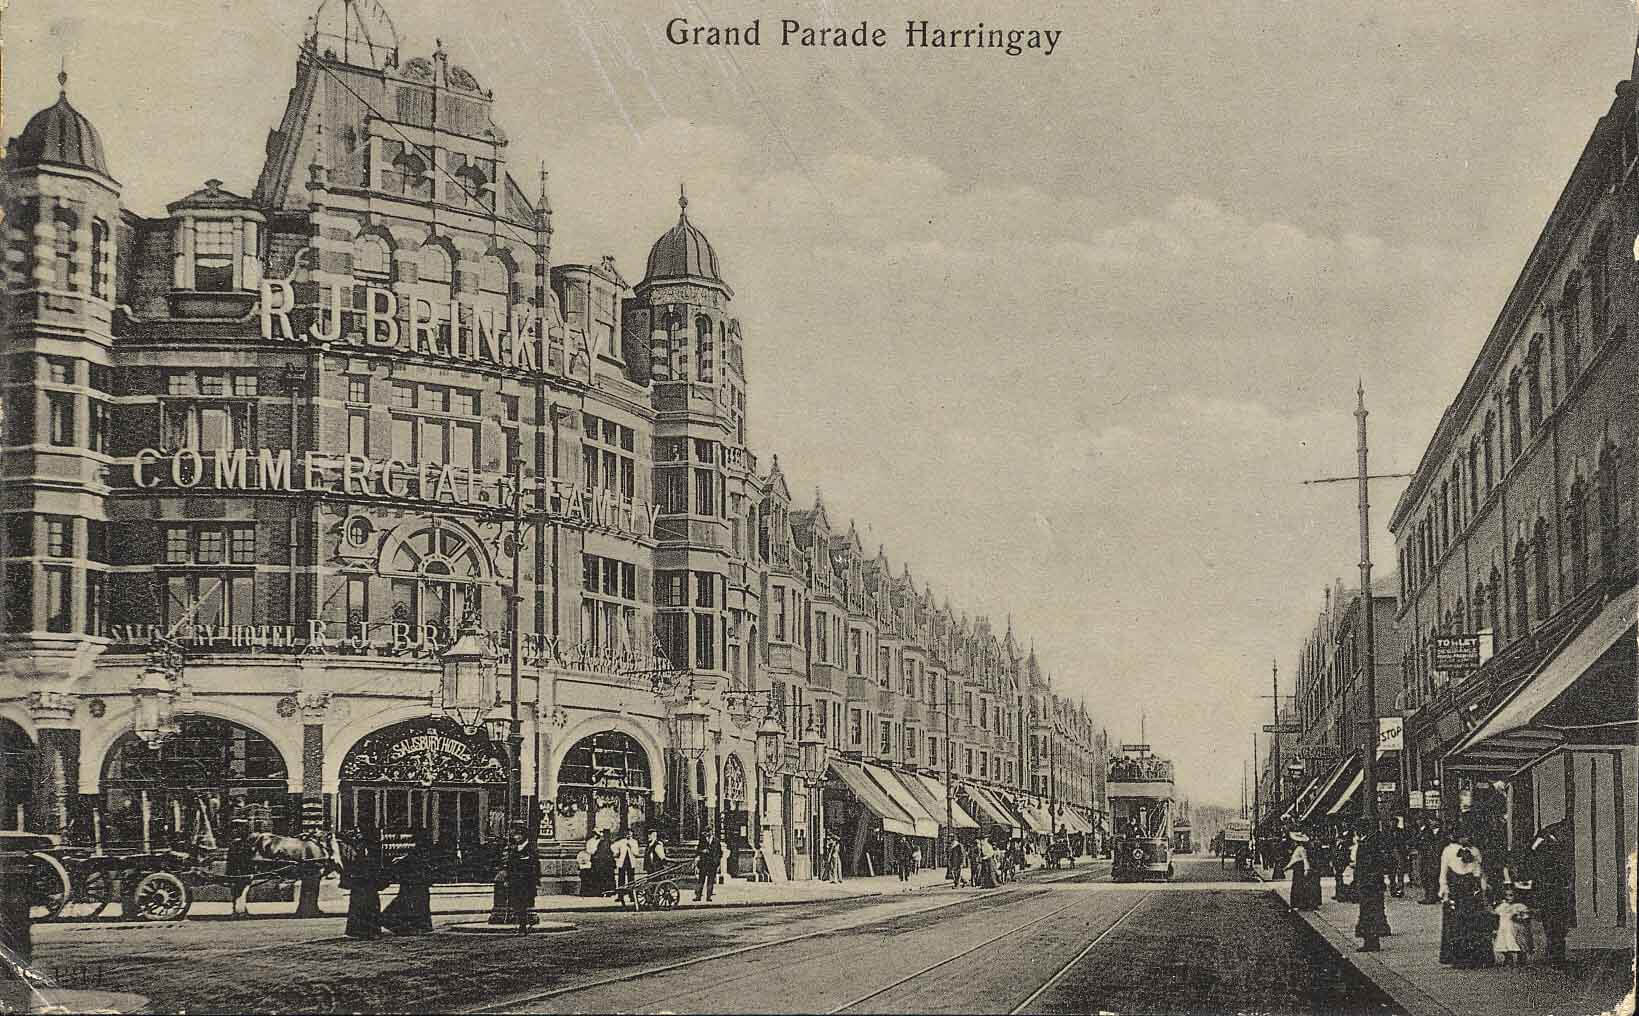 Grand Parade, Green Lanes, Harringay